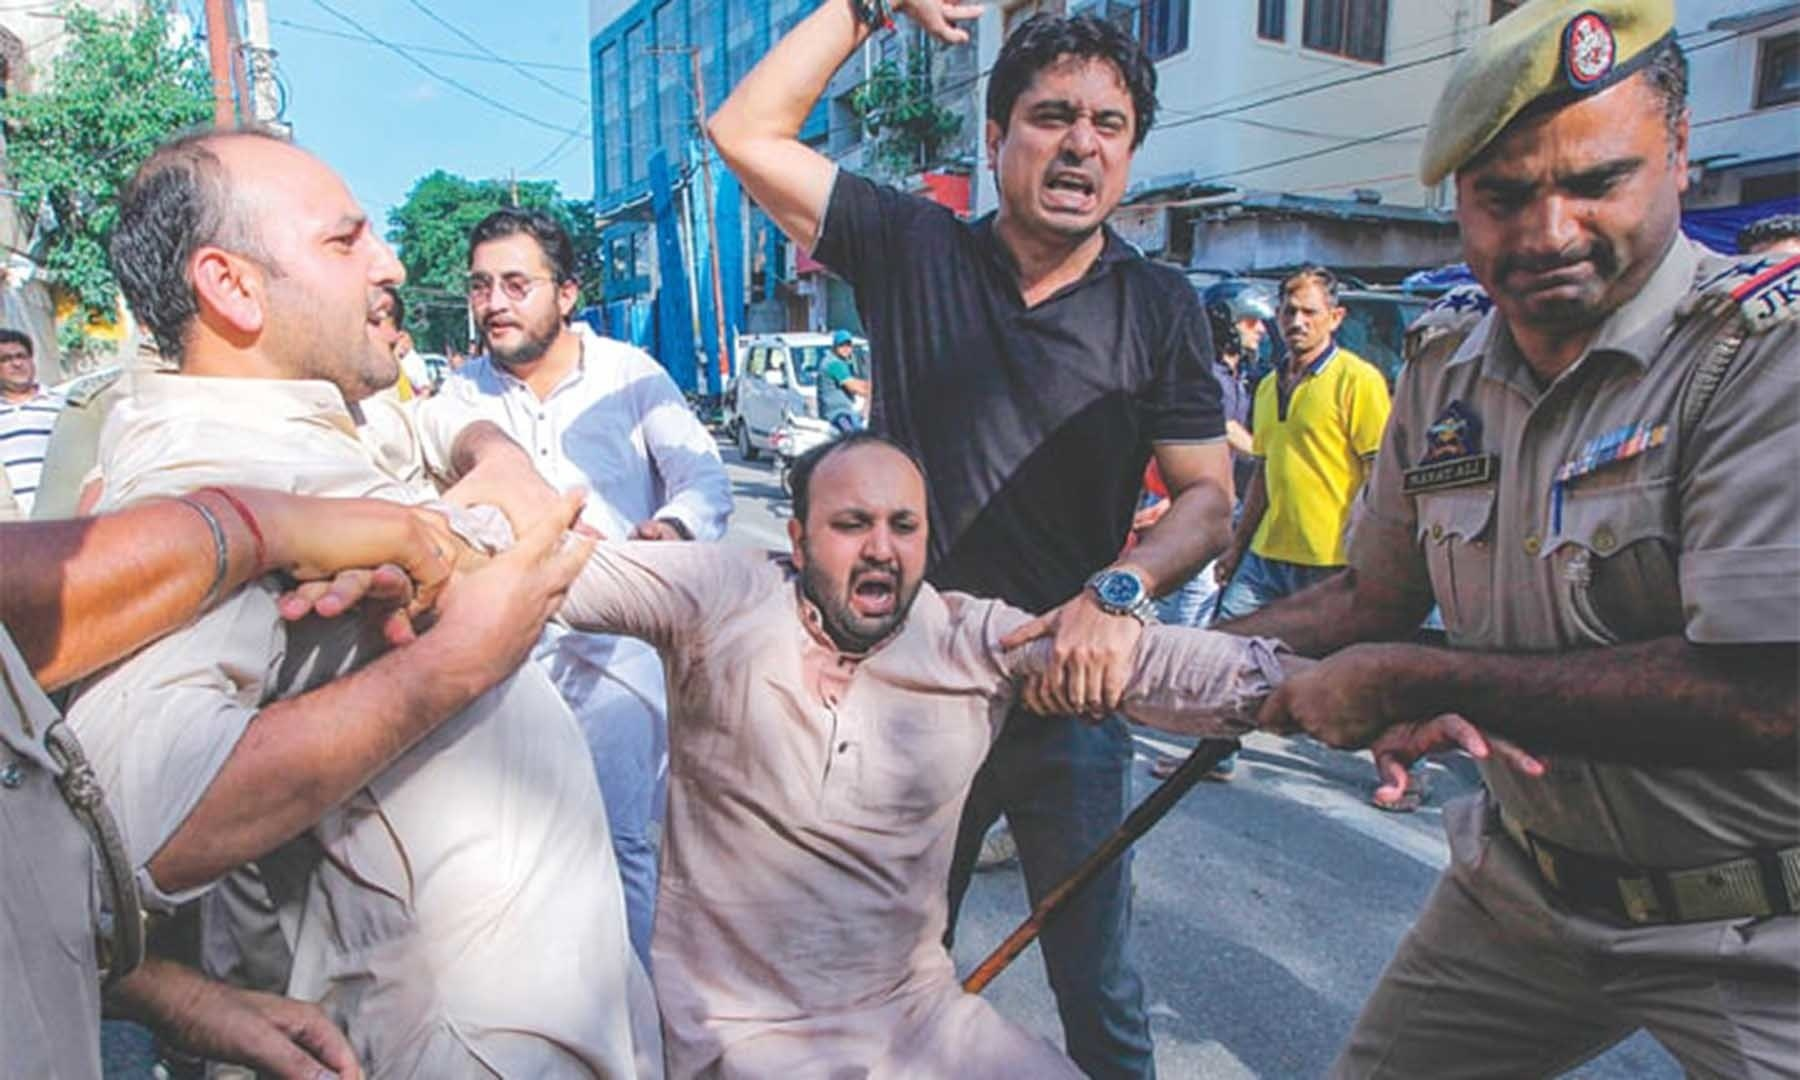 Police taking an activist of Jammu and Kashmir Youth Congress into custody during a protest against the Indian government on Aug 10. — AFP/File